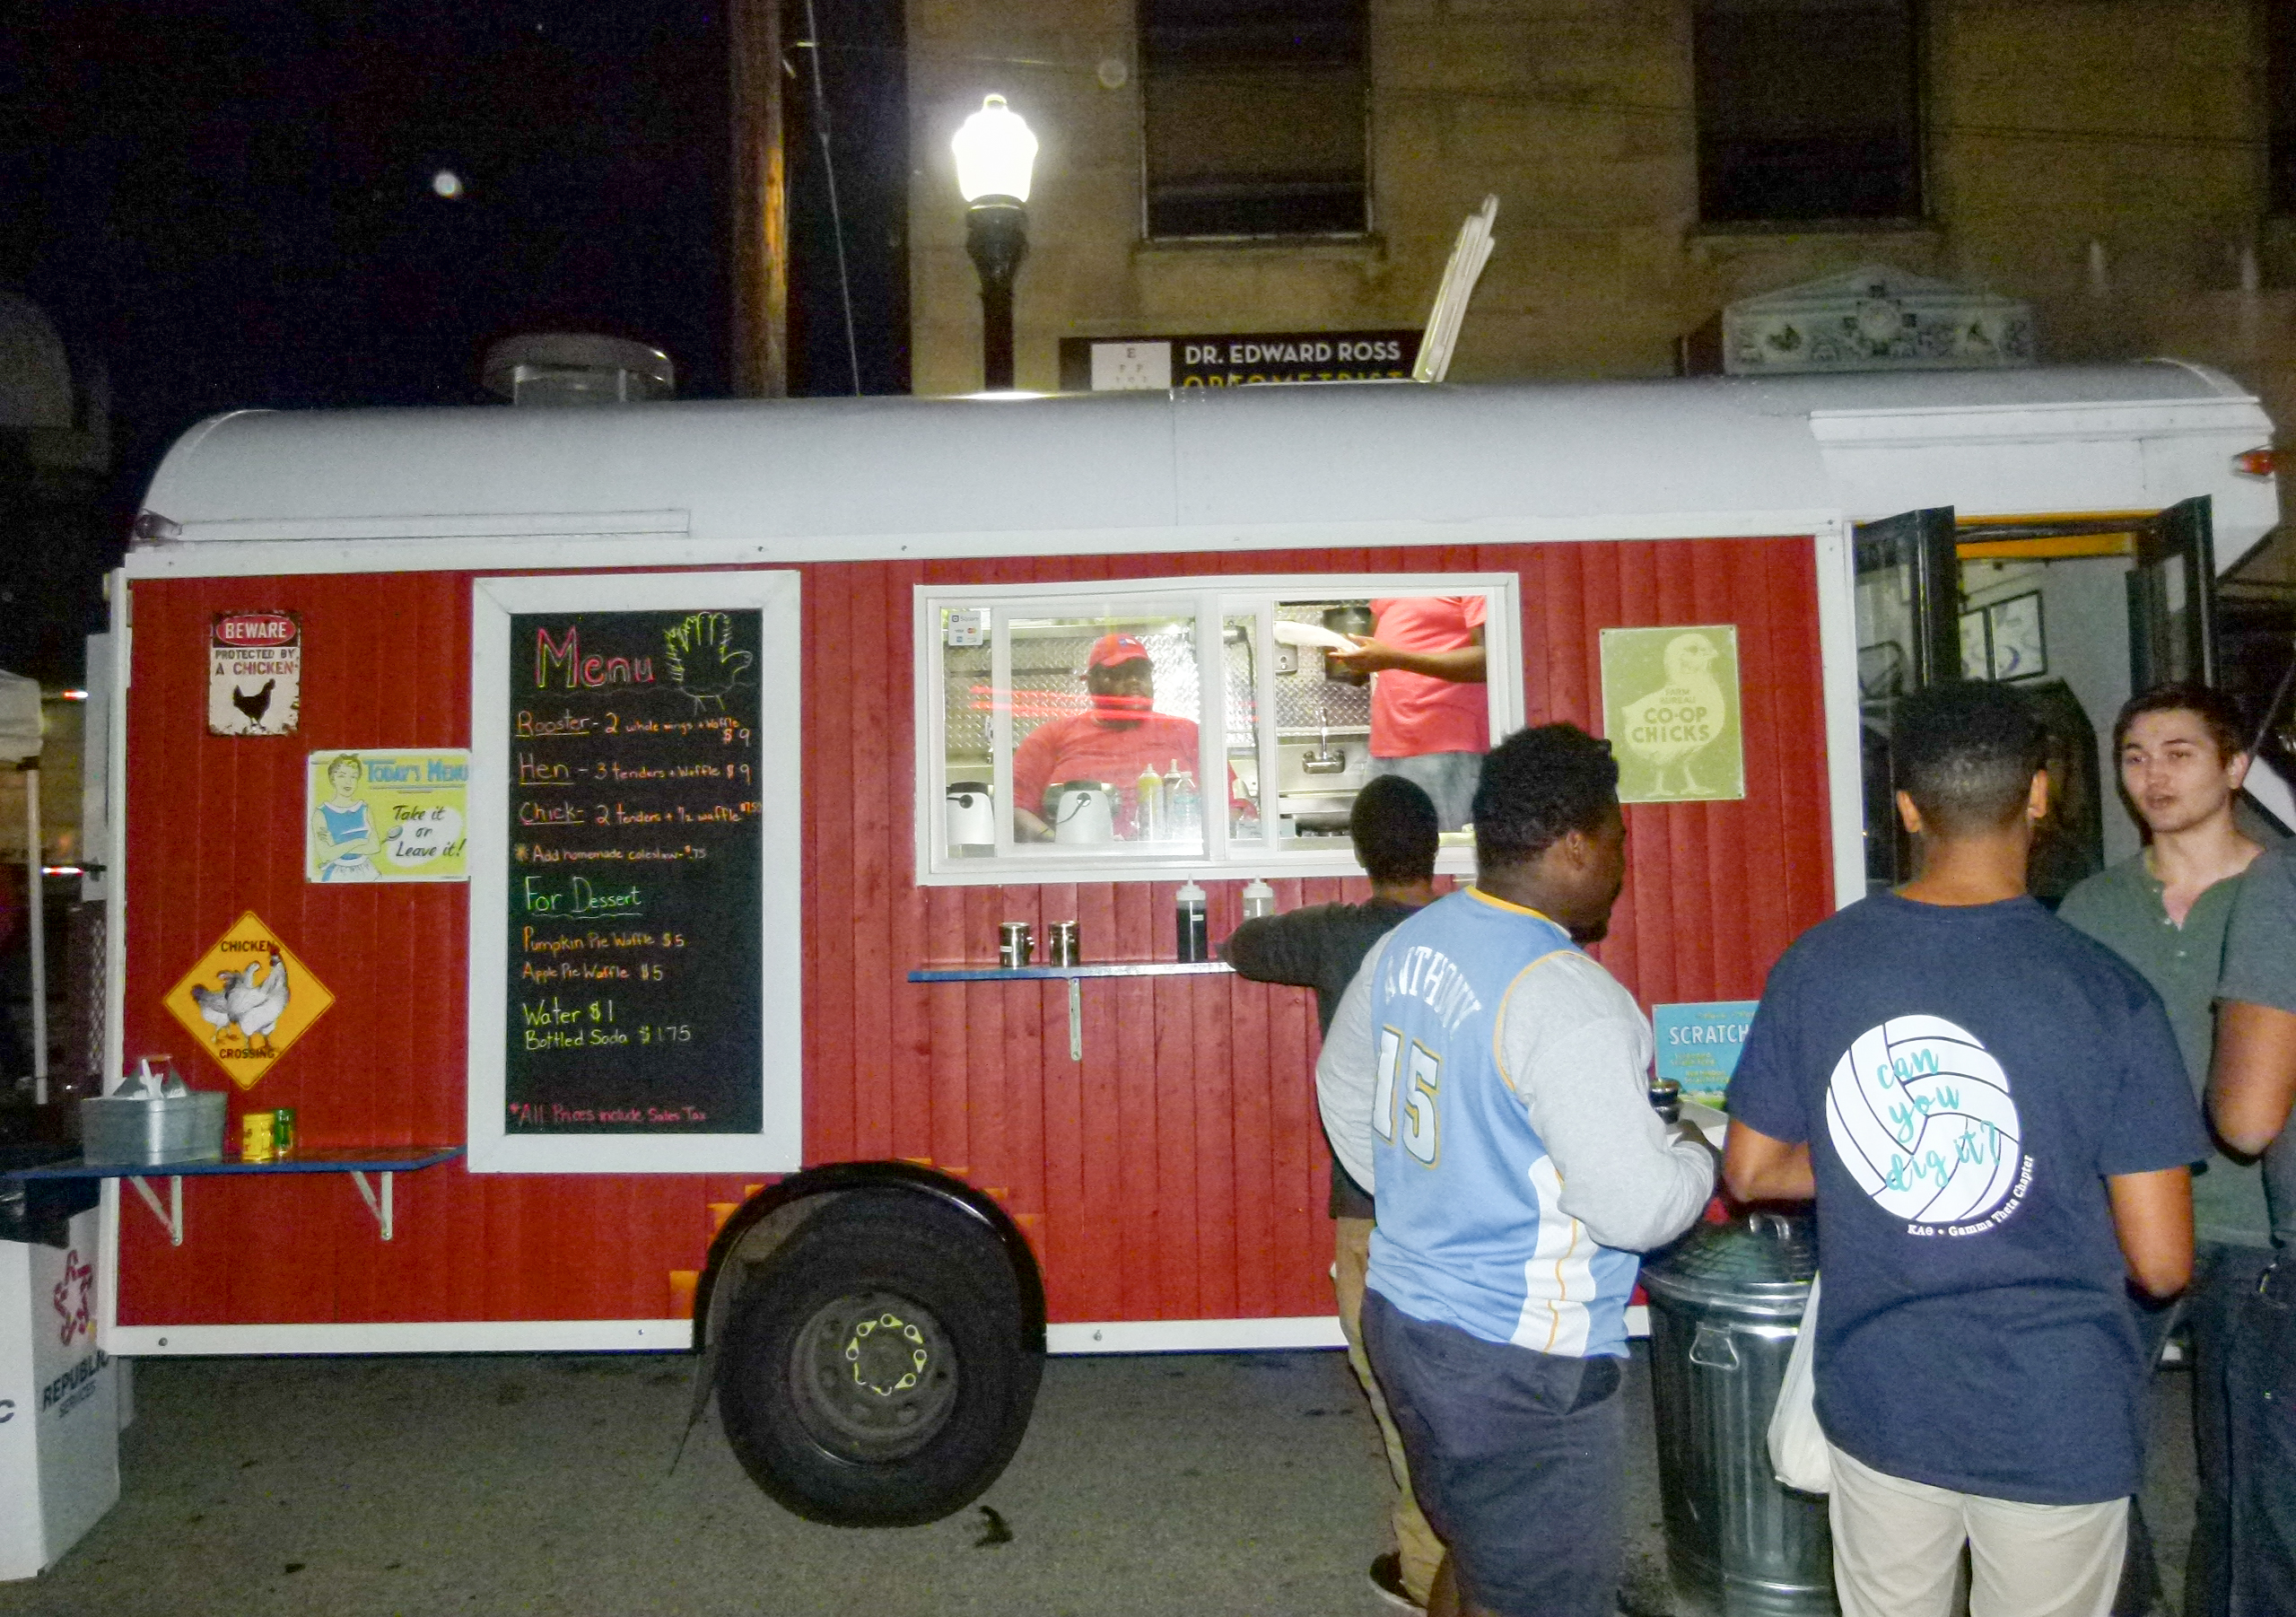 The Coop Chicken and Waffles food truck on the scene. Earsell Fitzgerald (in window) prepares food for a customer while his brother Justin (standing in the truck) restocks. Also working in the truck is Nikki.